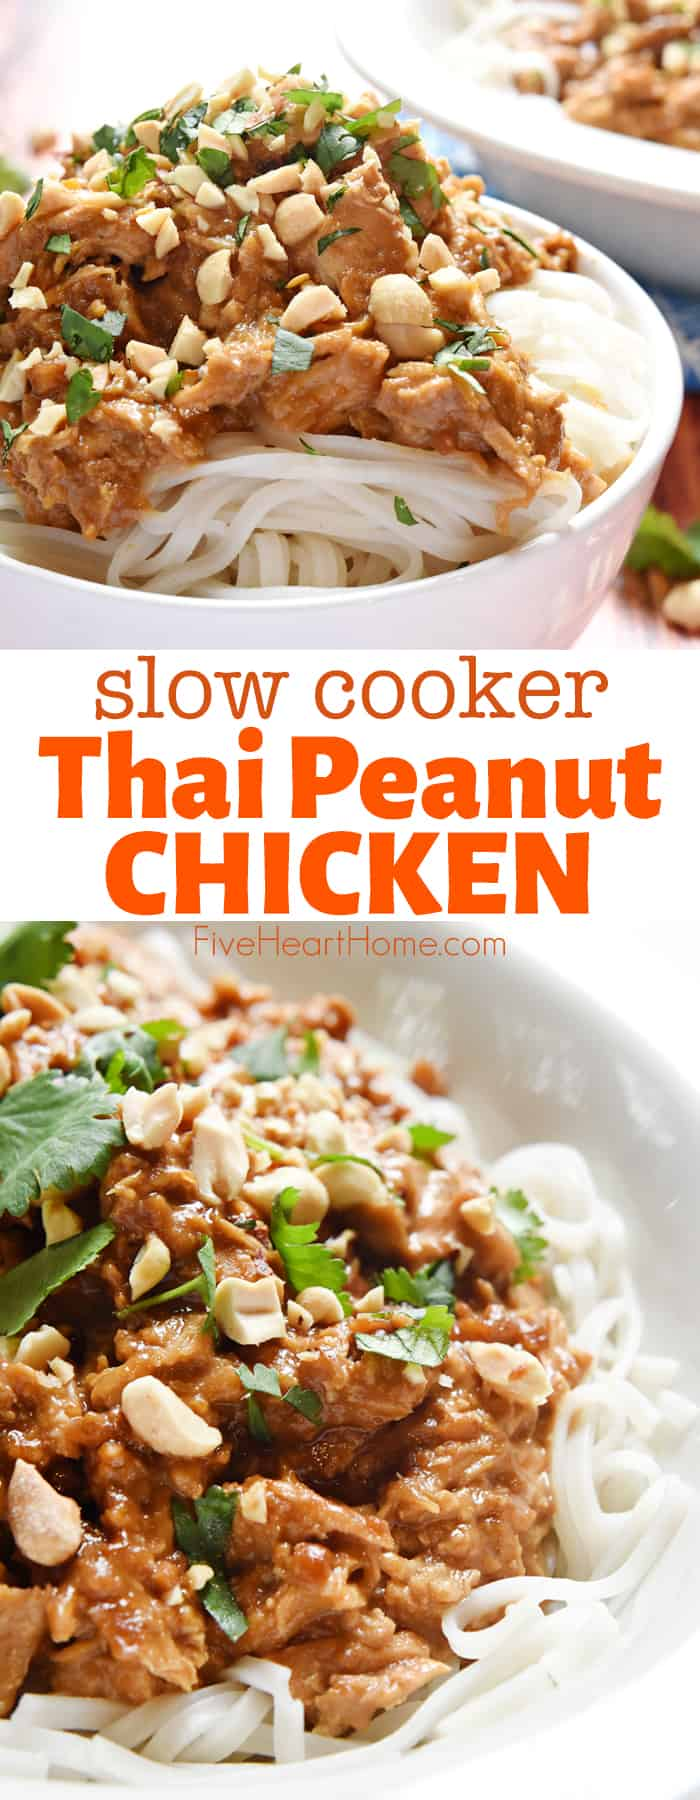 Slow Cooker Thai Peanut Chicken ~ made in the crockport, this easy dinner recipe features tender chicken stewed in a flavorful coconut milk and peanut sauce, served over rice or rice noodles! | FiveHeartHome.com #thaipeanutchicken #thaichicken #peanutchicken